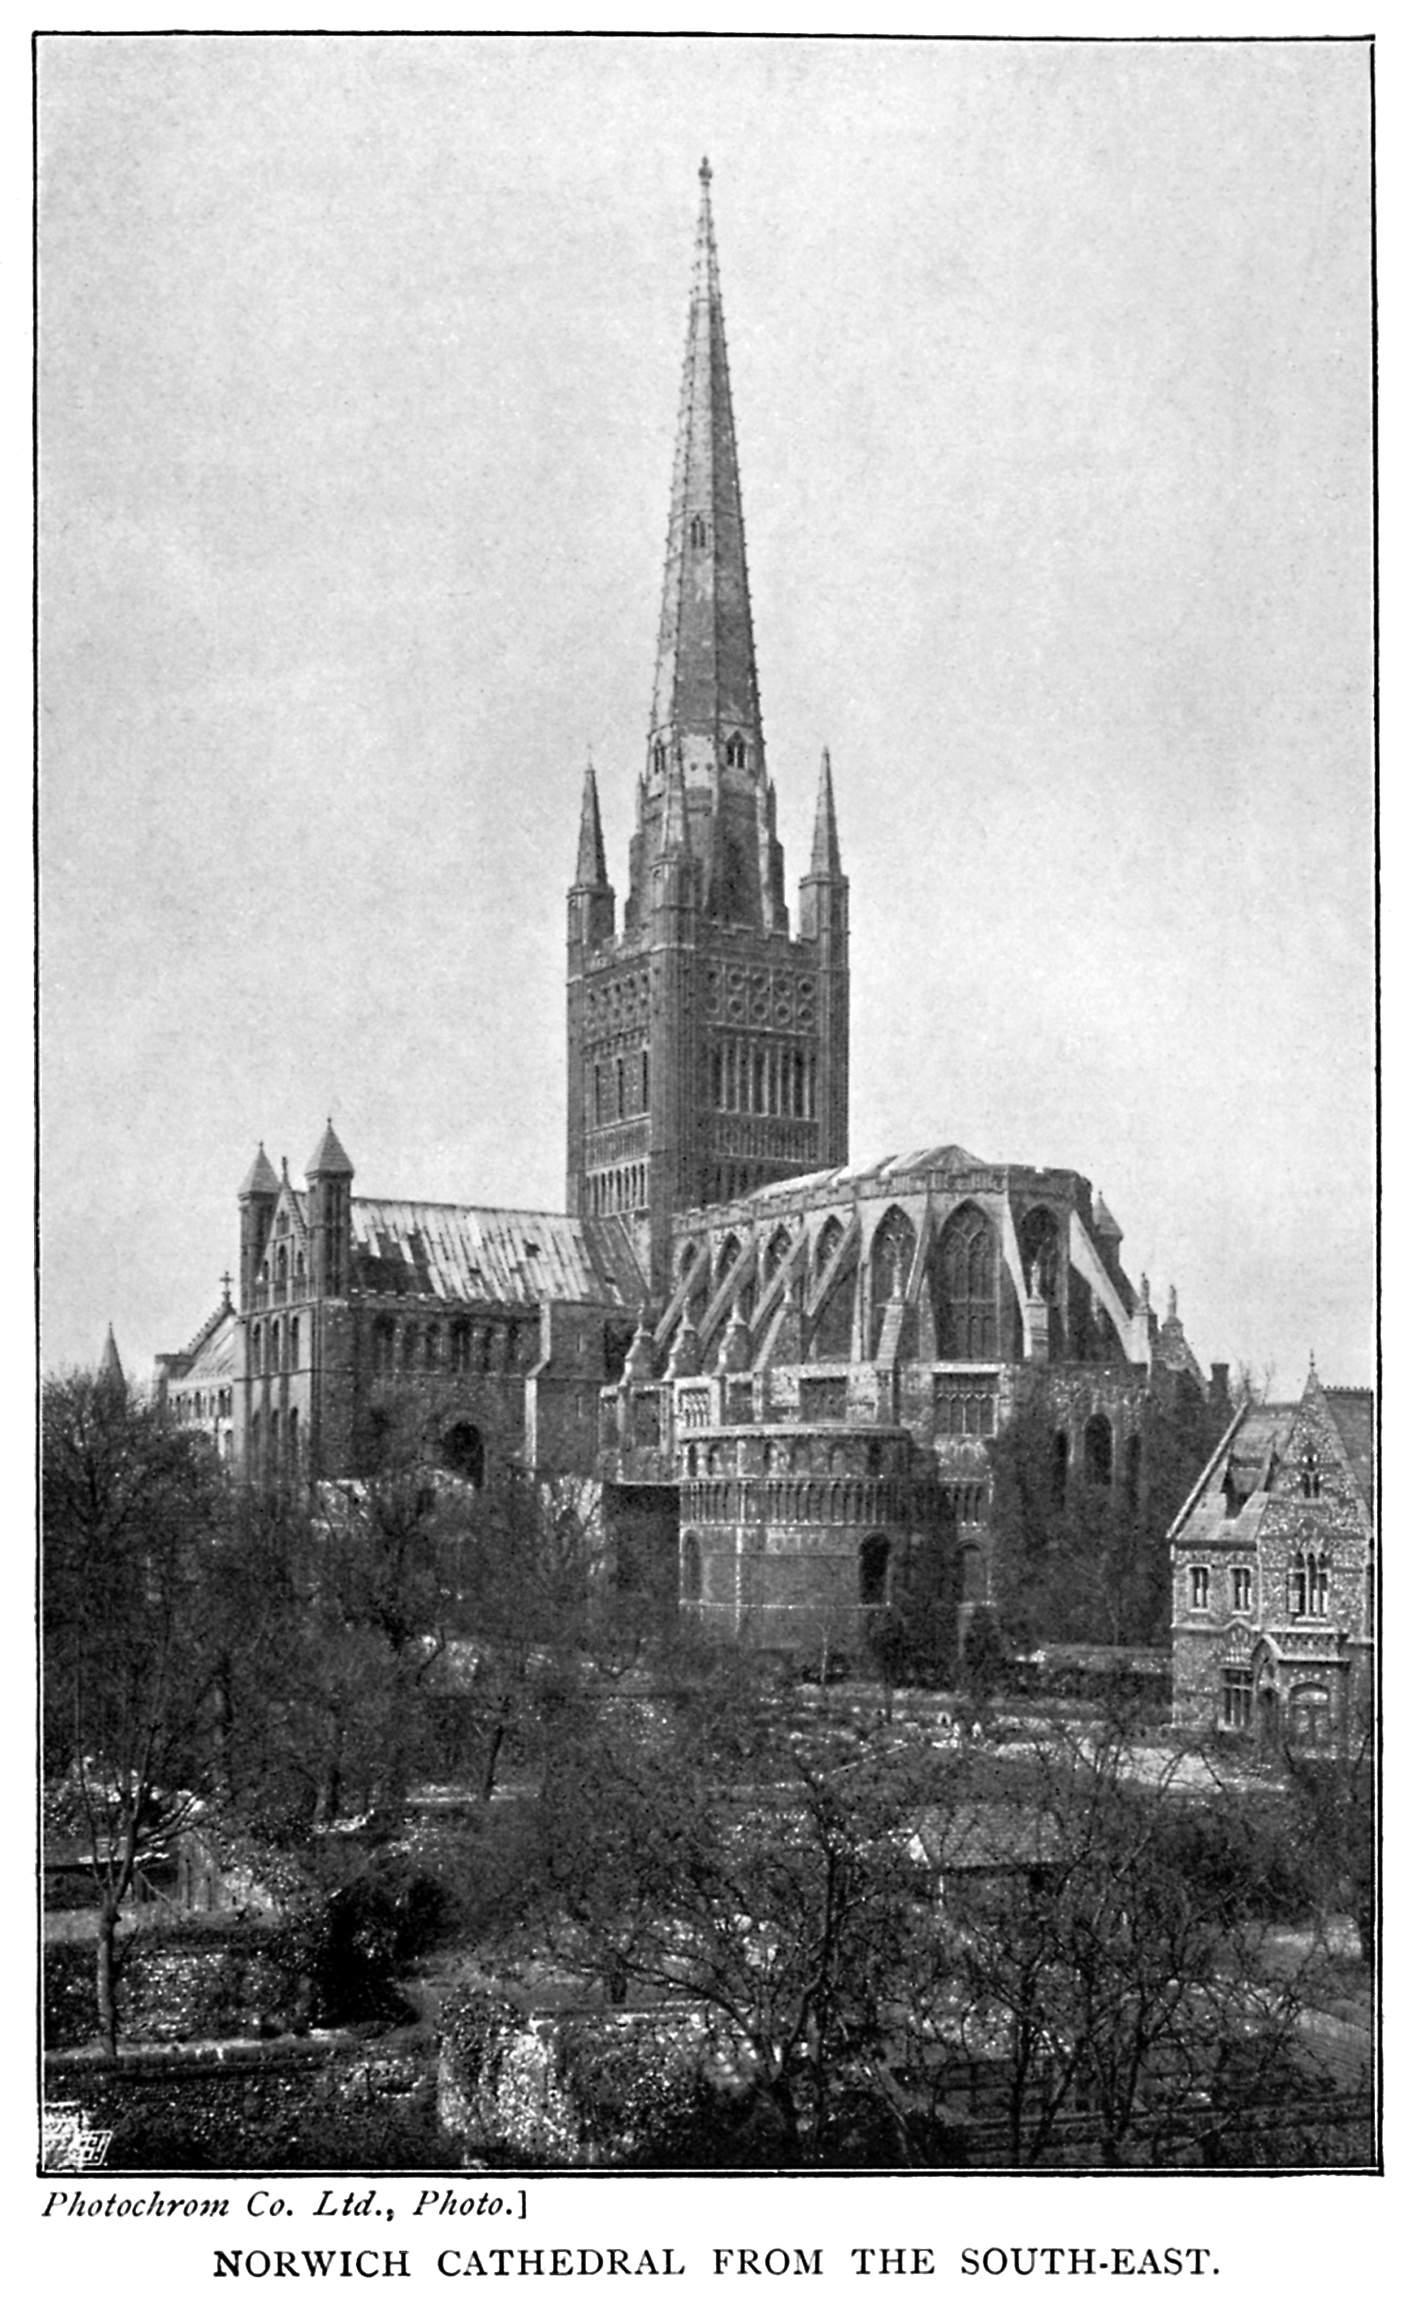 Norwich Cathedral from the South-East.